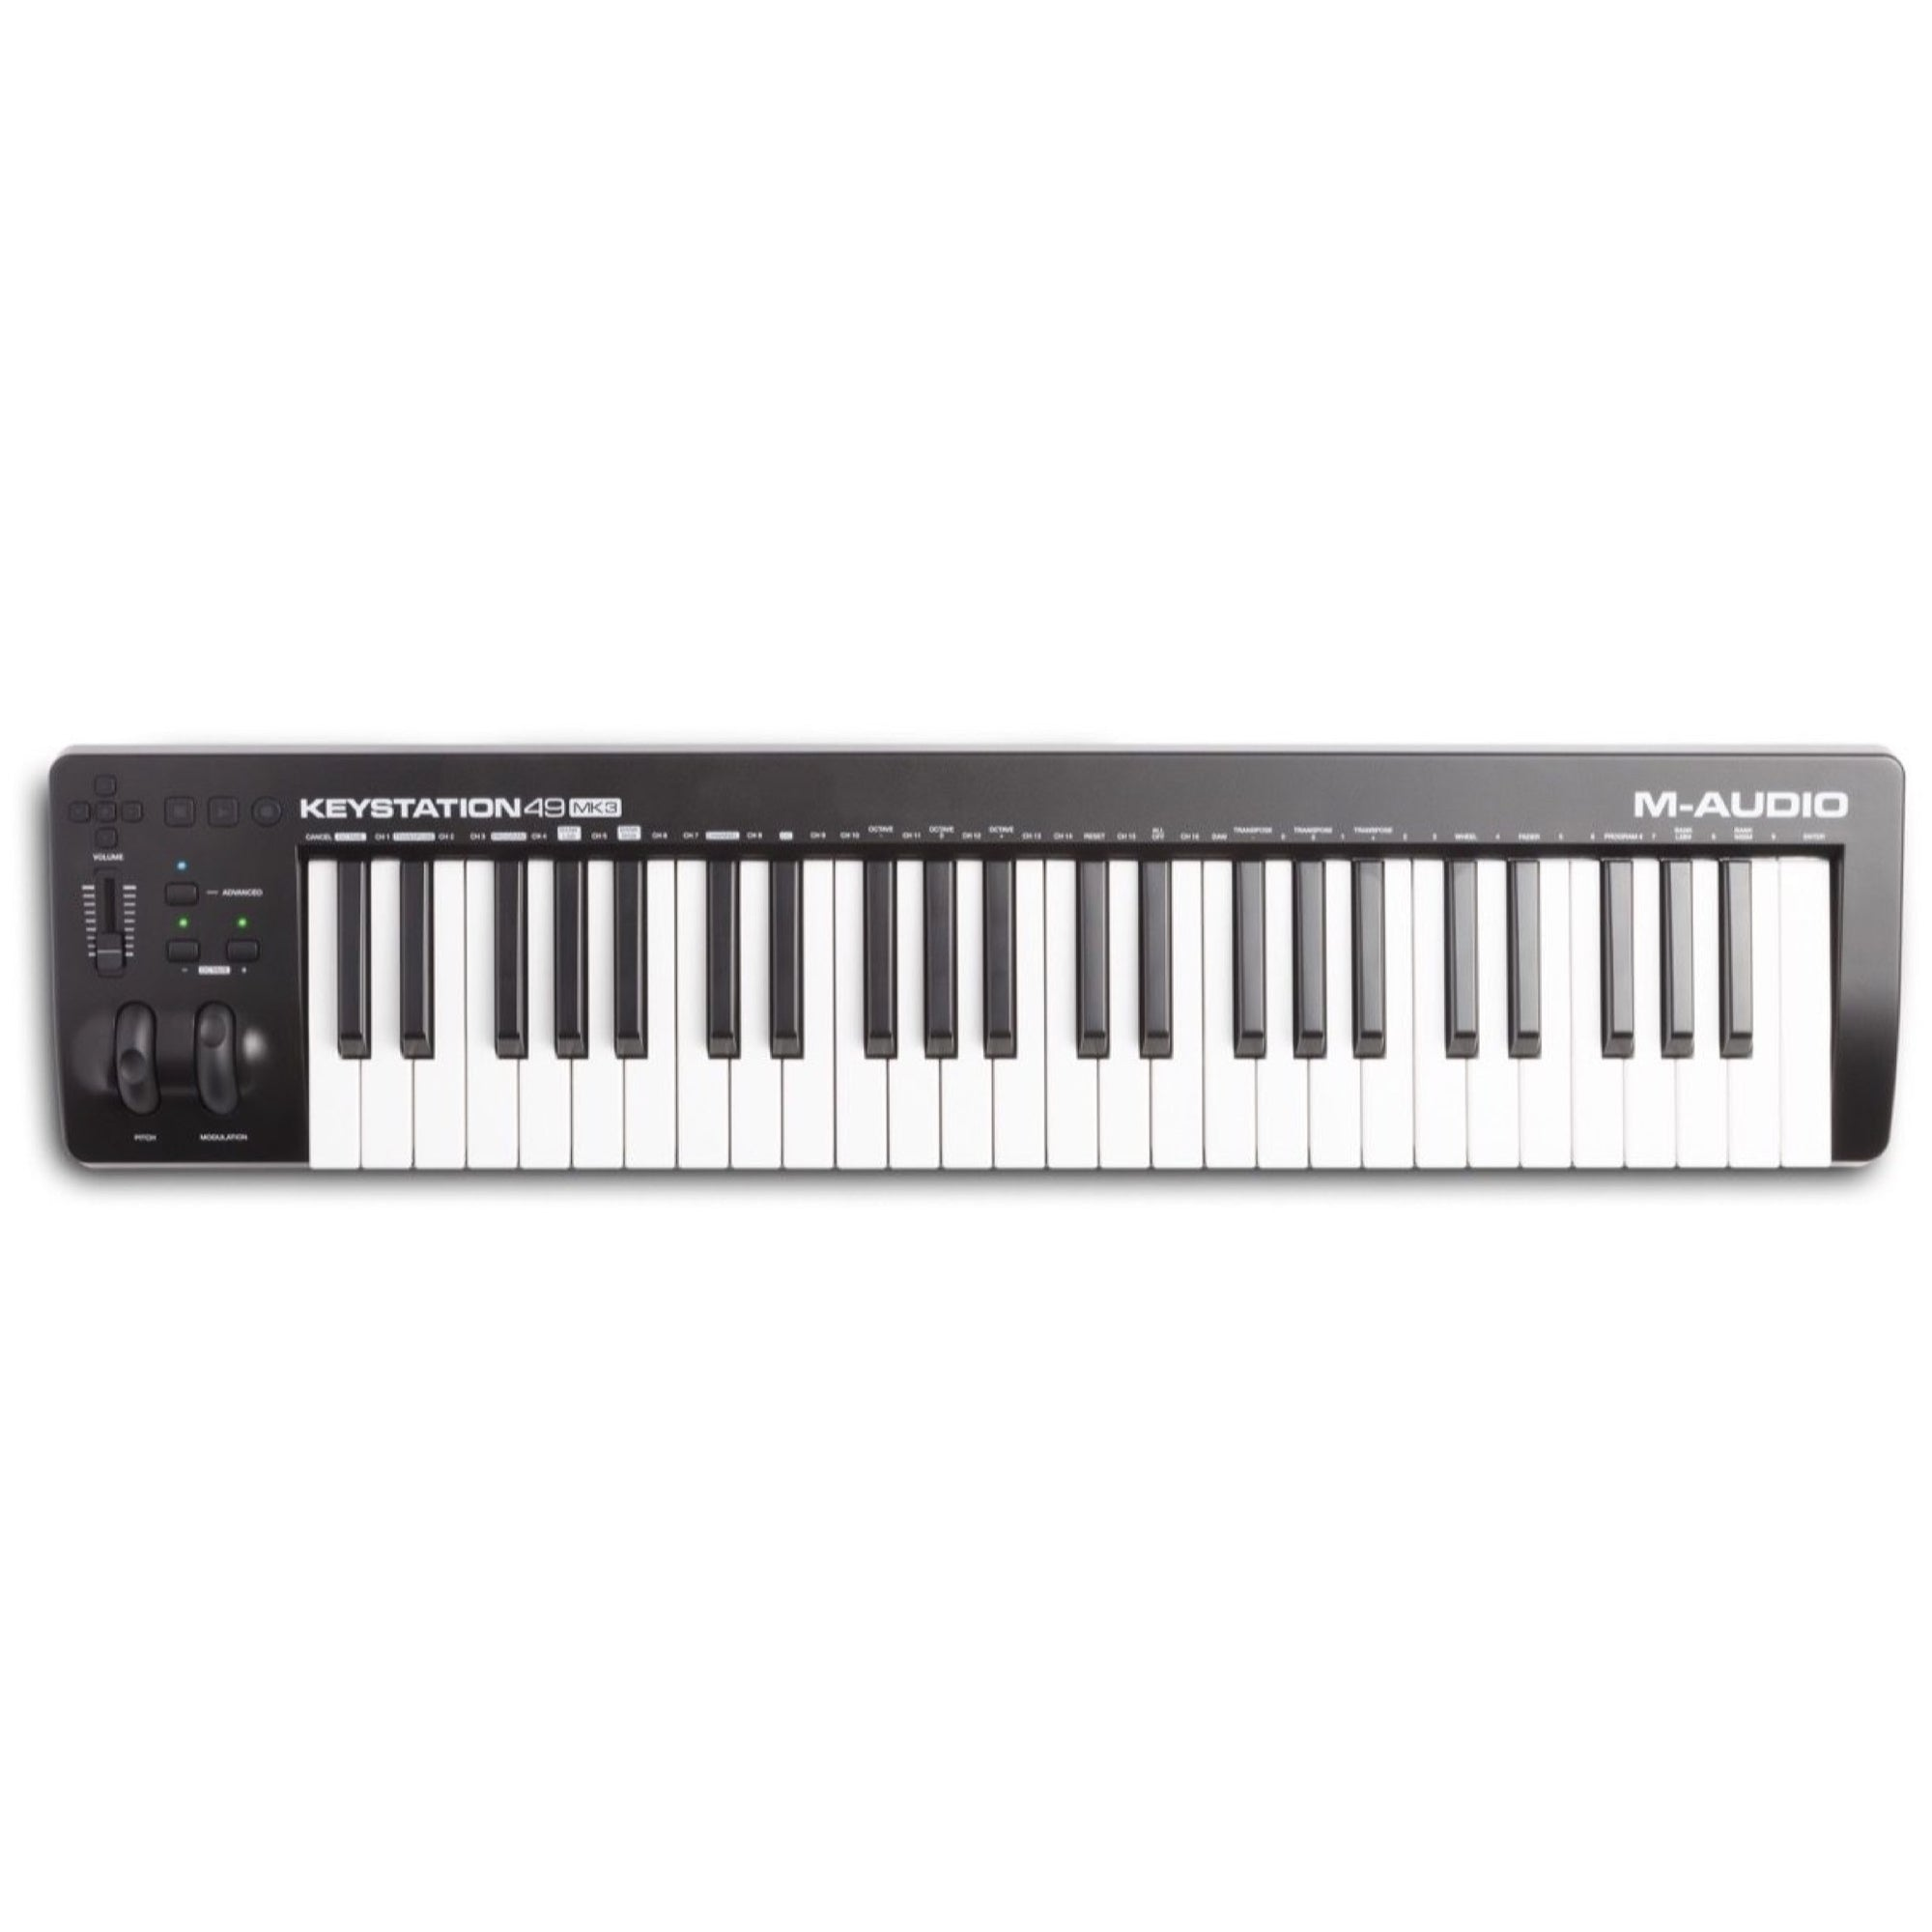 M-Audio Keystation 49 MK3 USB MIDI Controller, 49-Key